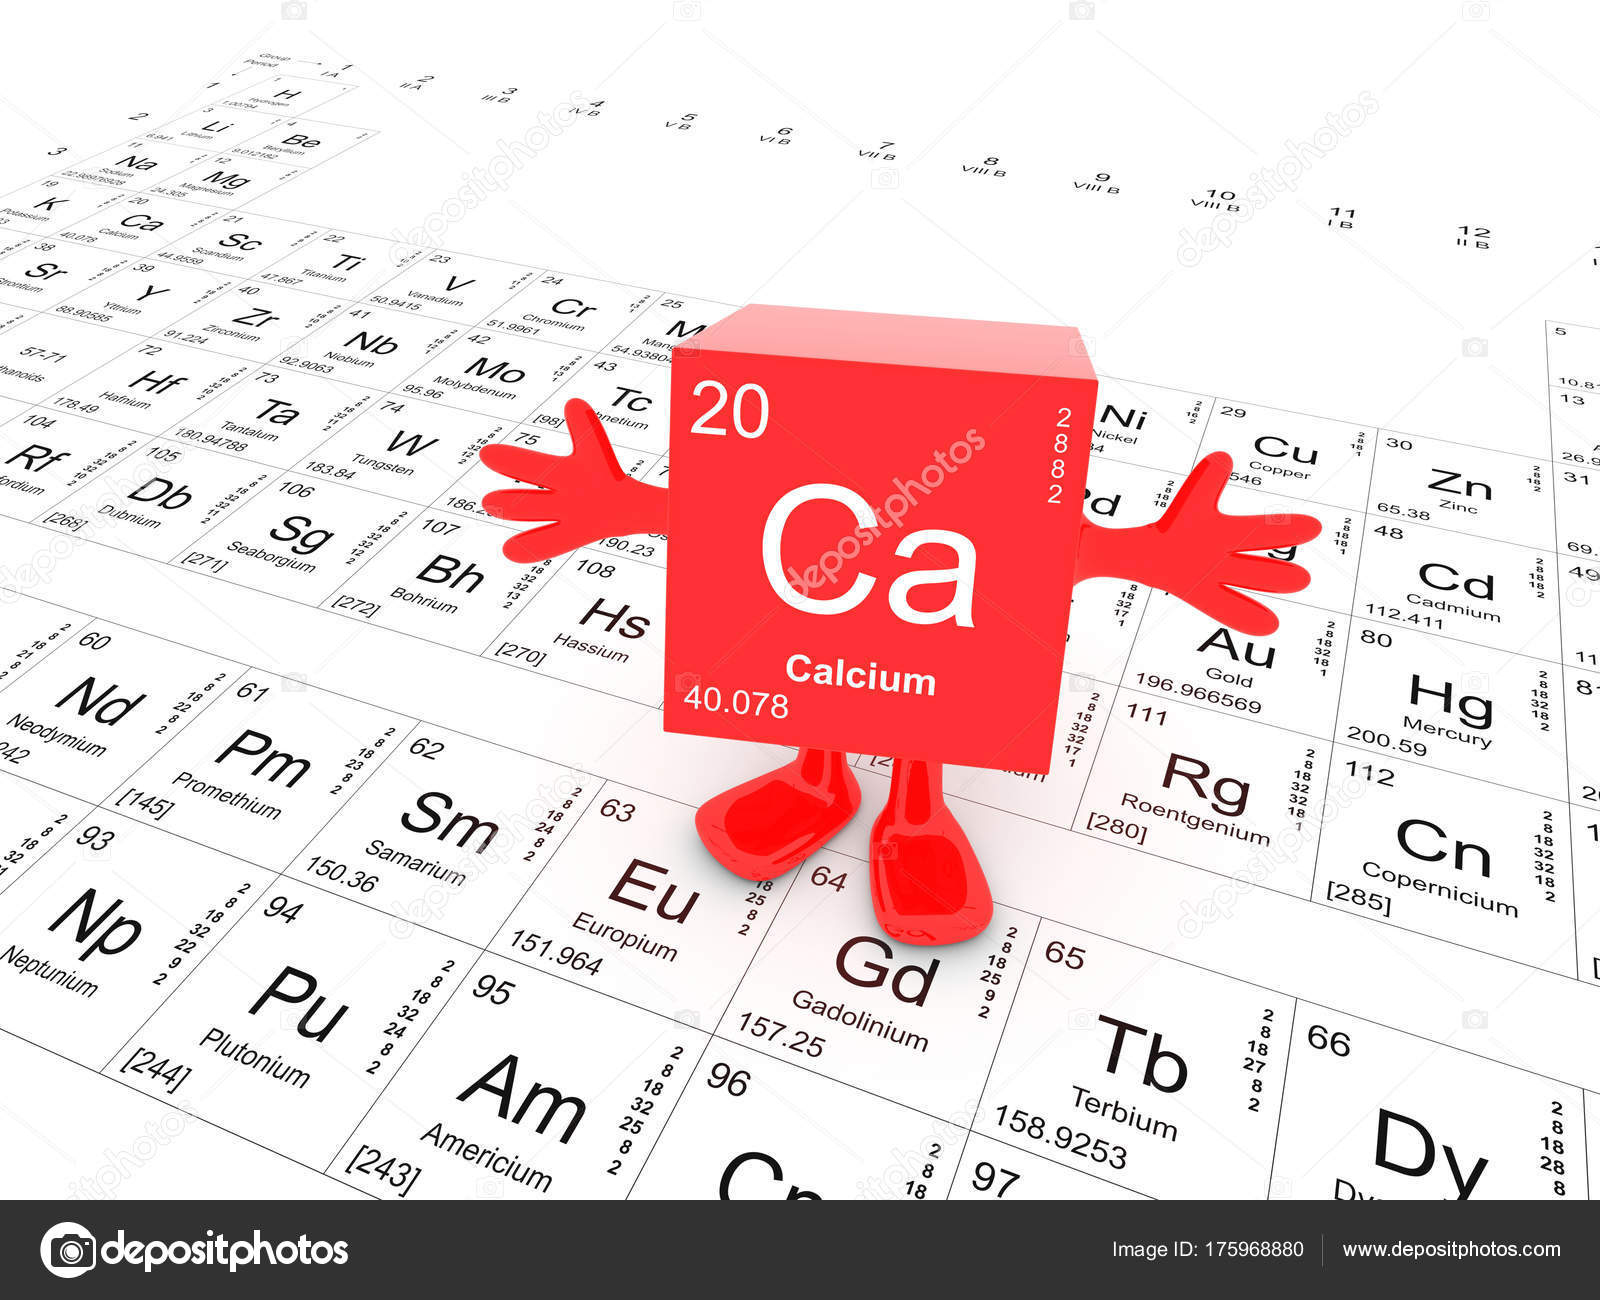 Calcium element symbol periodic table happy red cube hands stock calcium element symbol on the periodic table happy red cube with hands up photo by conceptw urtaz Gallery